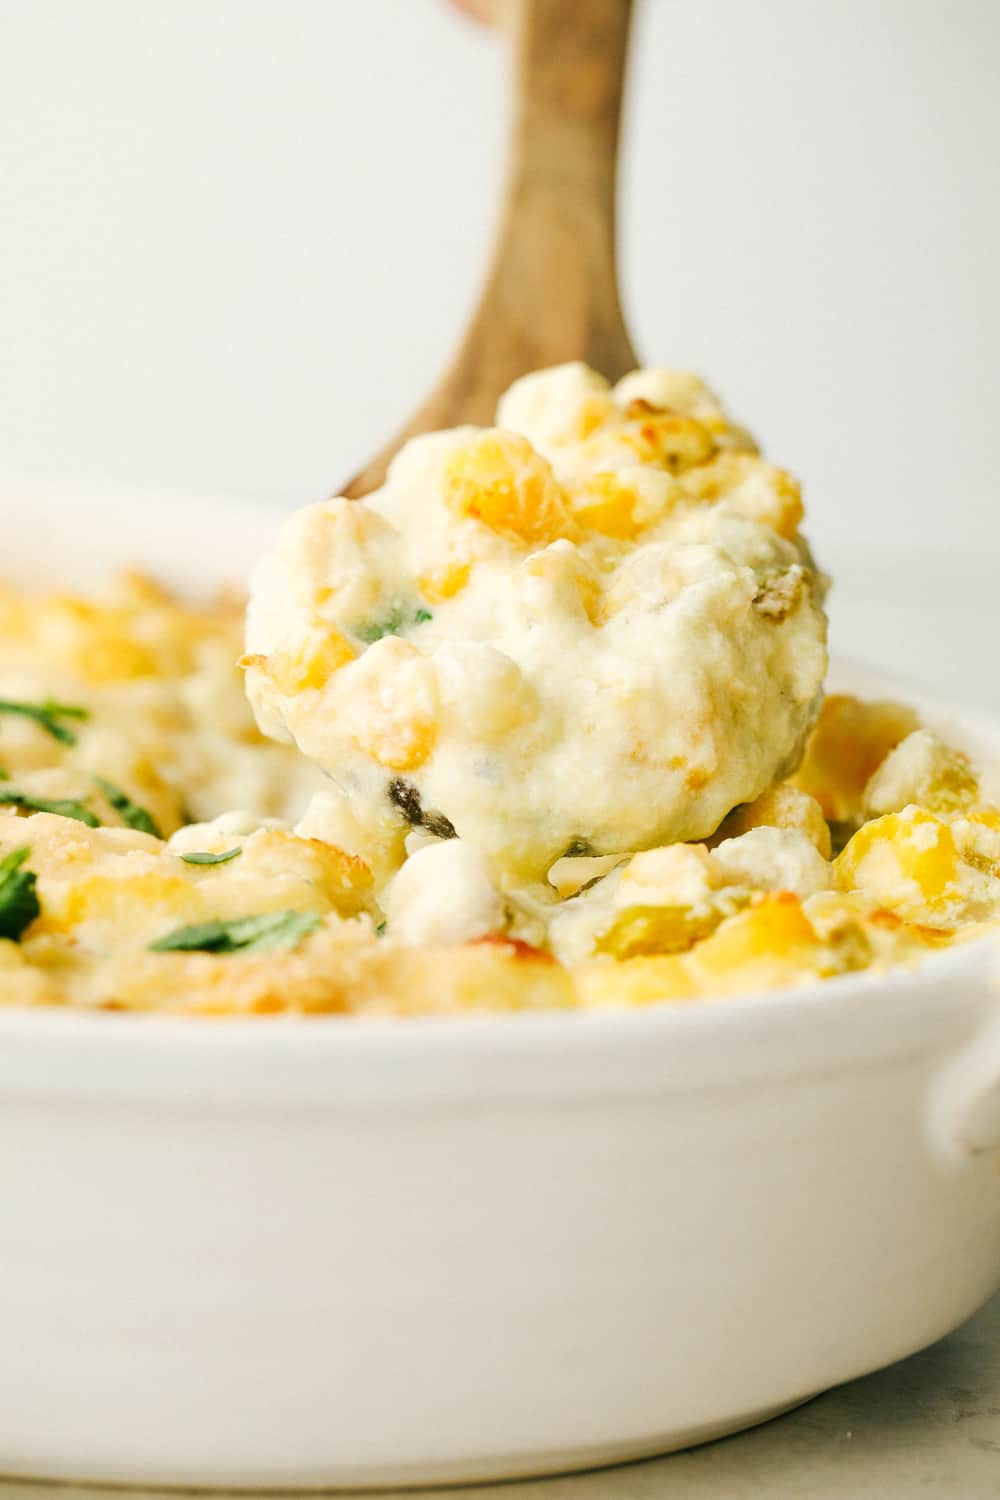 Scooping out creamy cheesy hominy casserole.